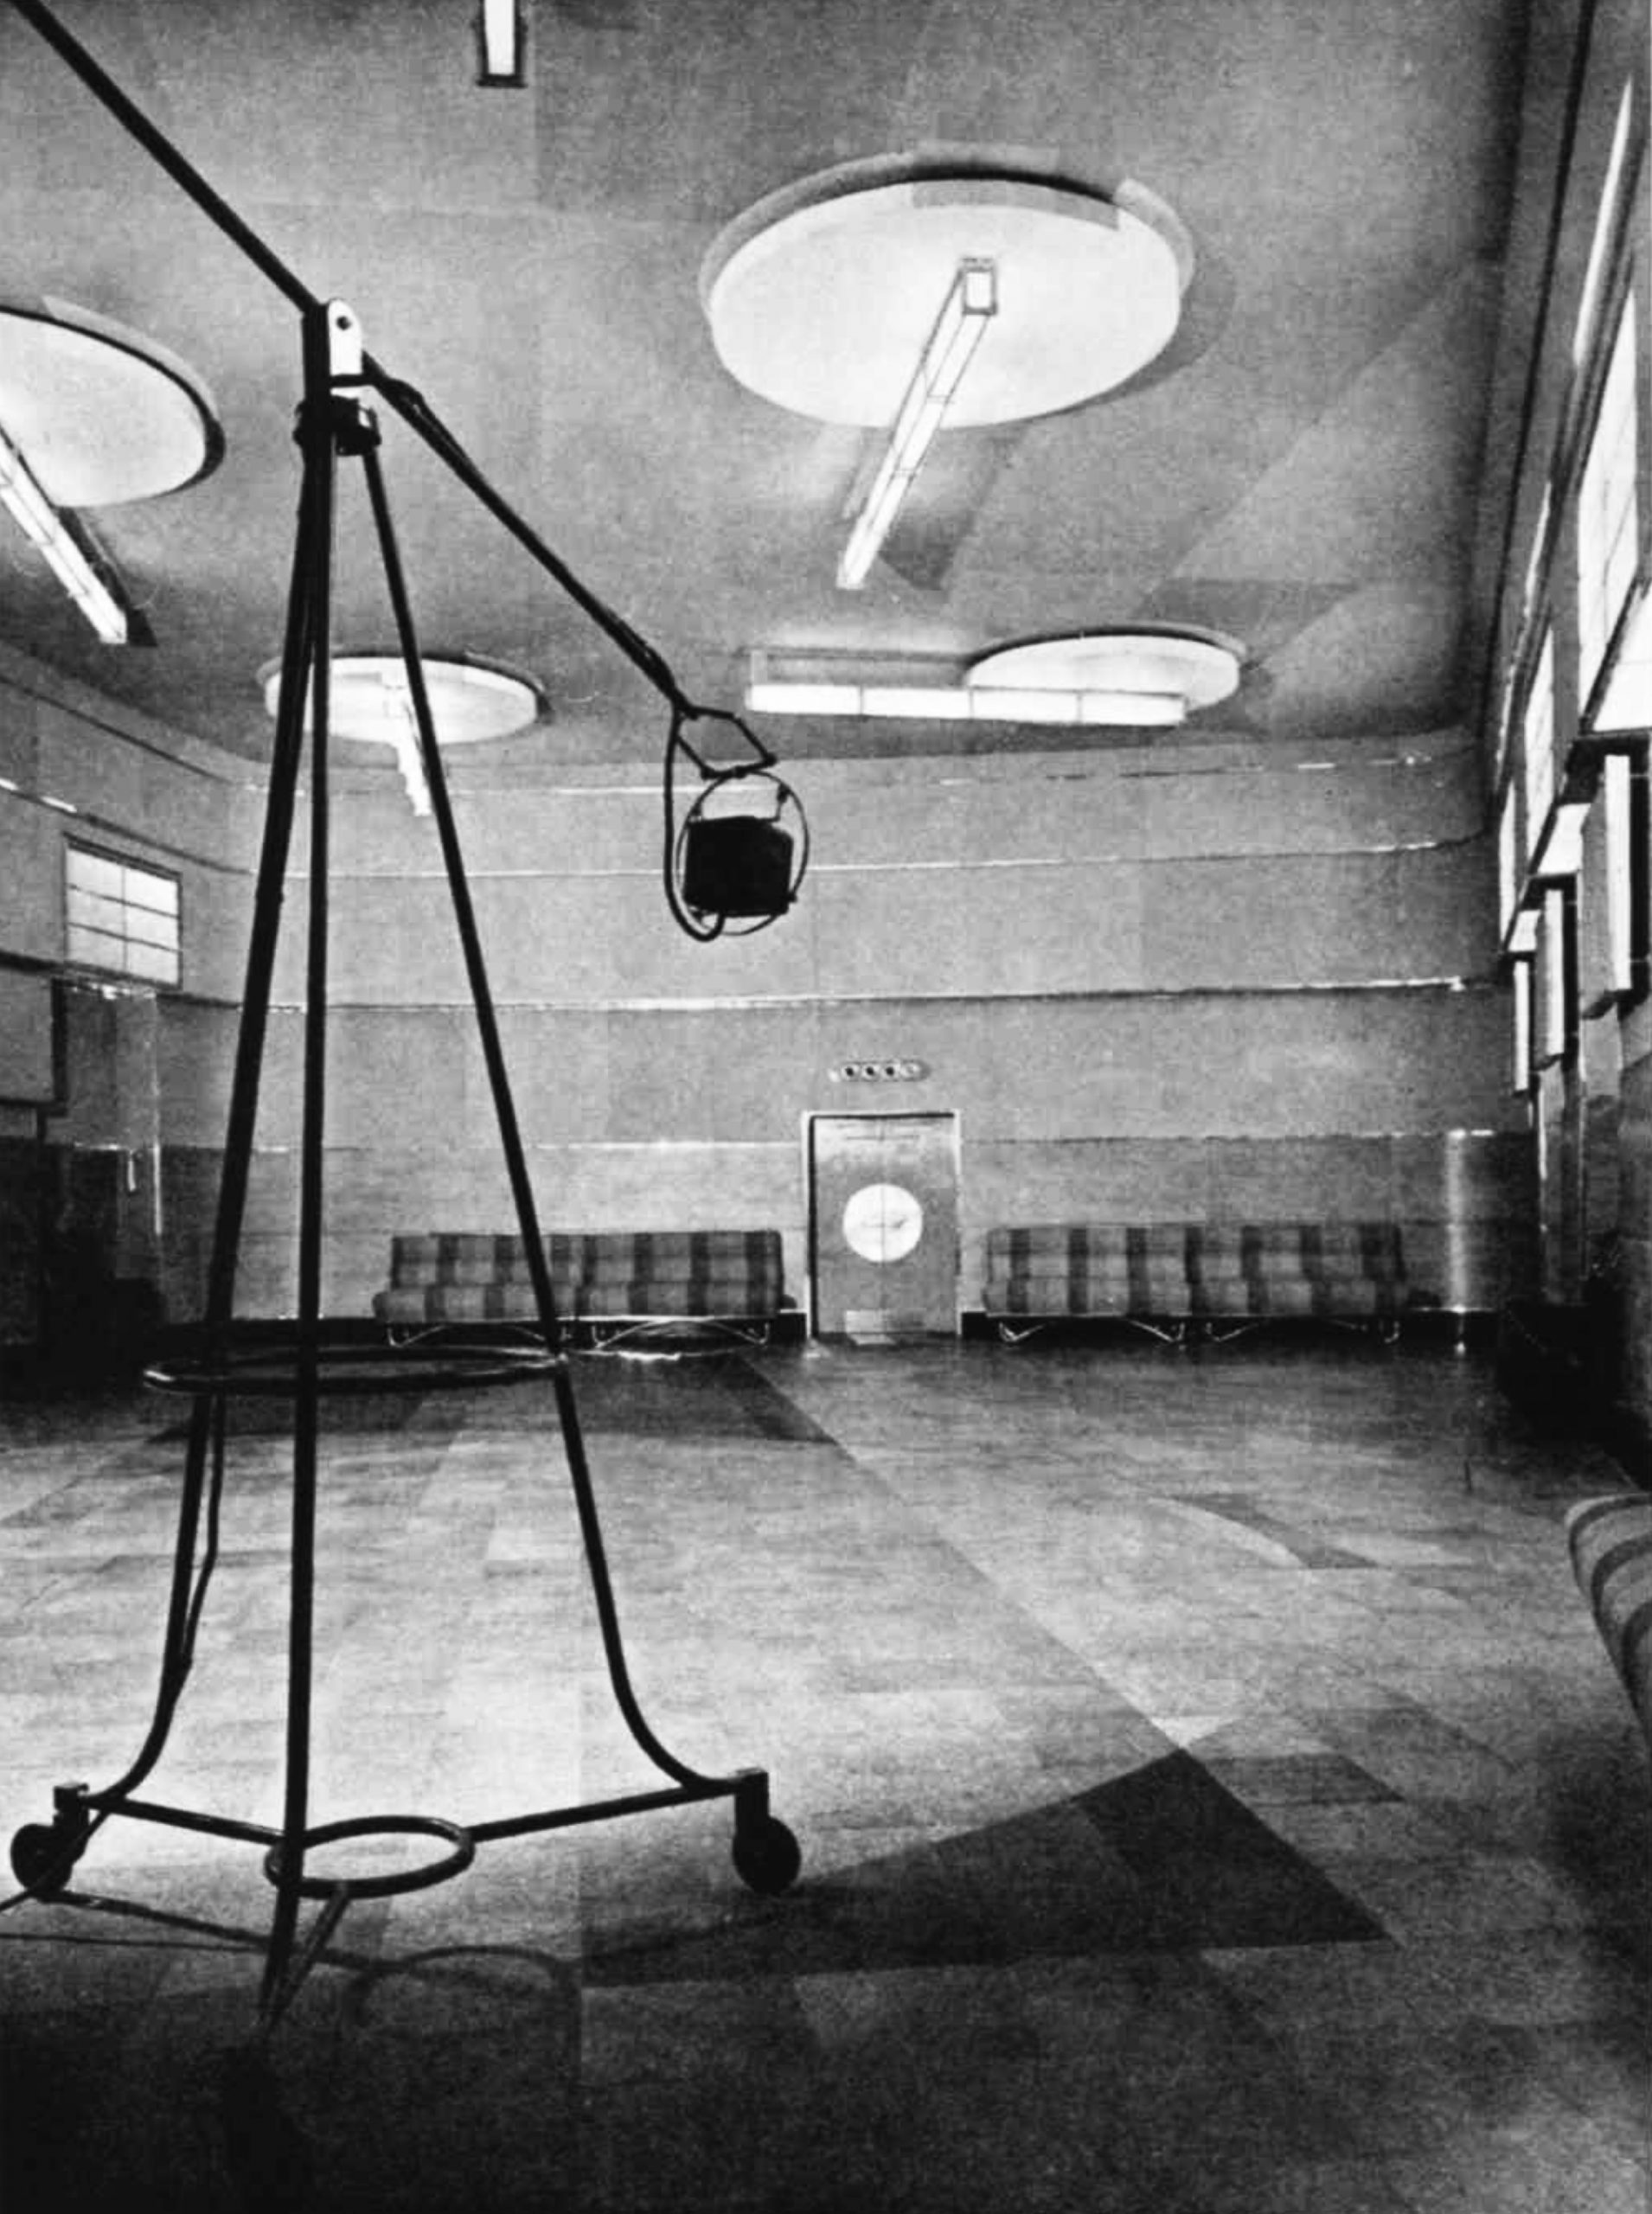 A microphone on a portable stand in the midst of a large empty space